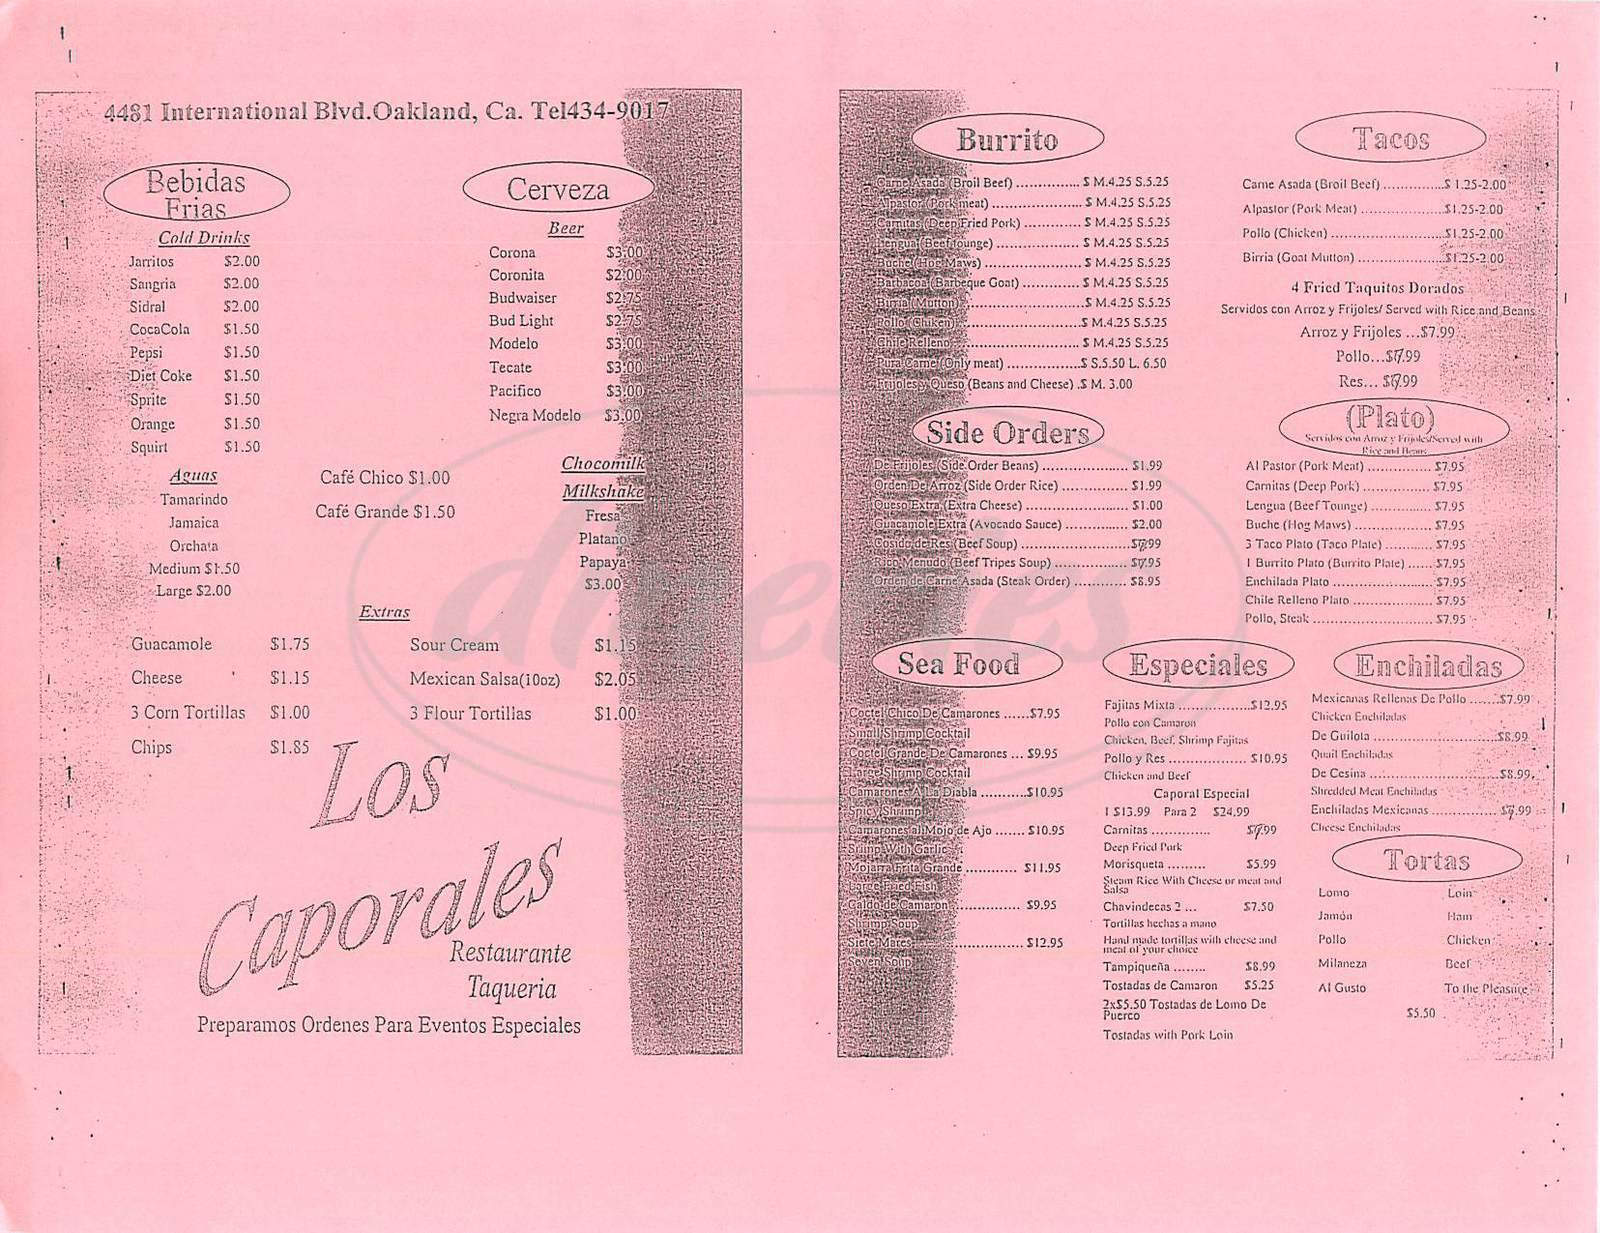 menu for Los Caporales